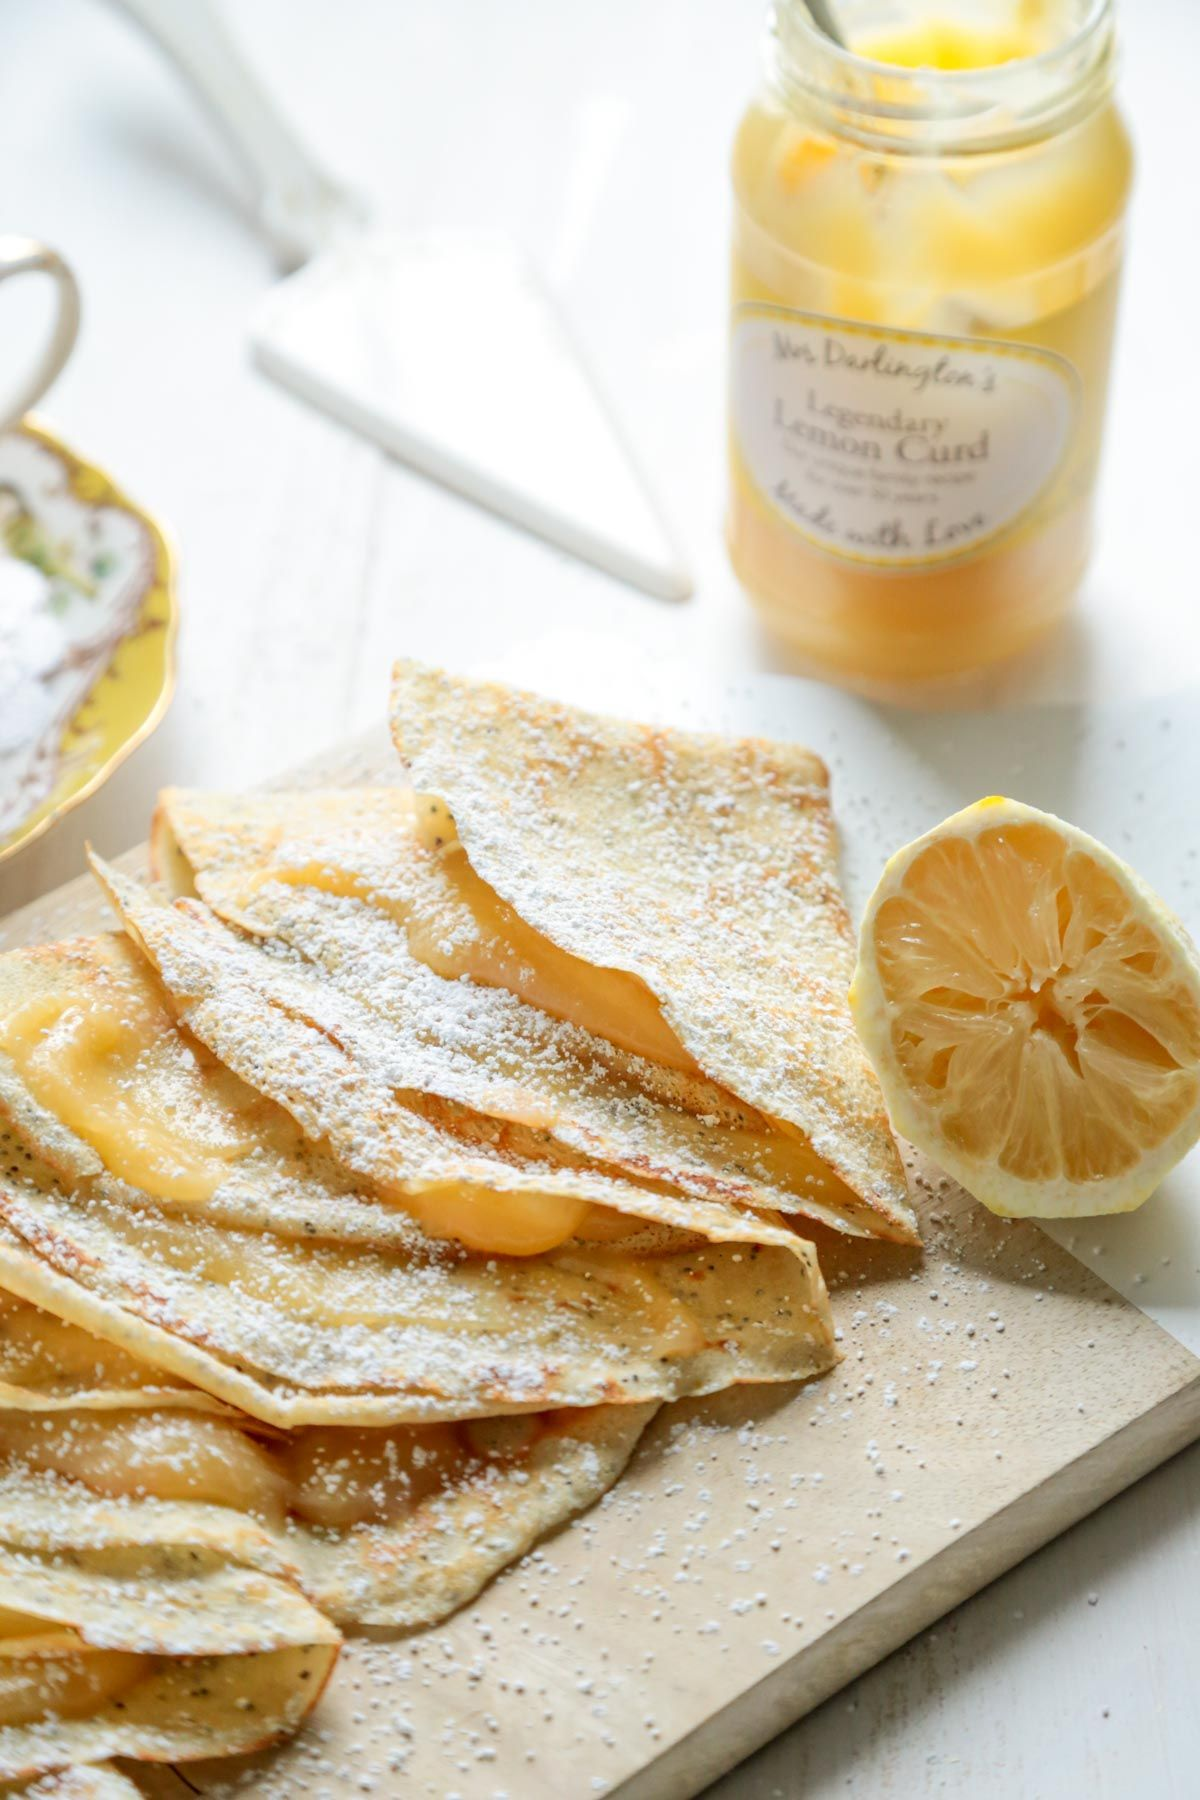 Lemon Poppyseed Crepes with Lemon Curd - And NO Fancy Pans Required! - www.countrycleaver.com